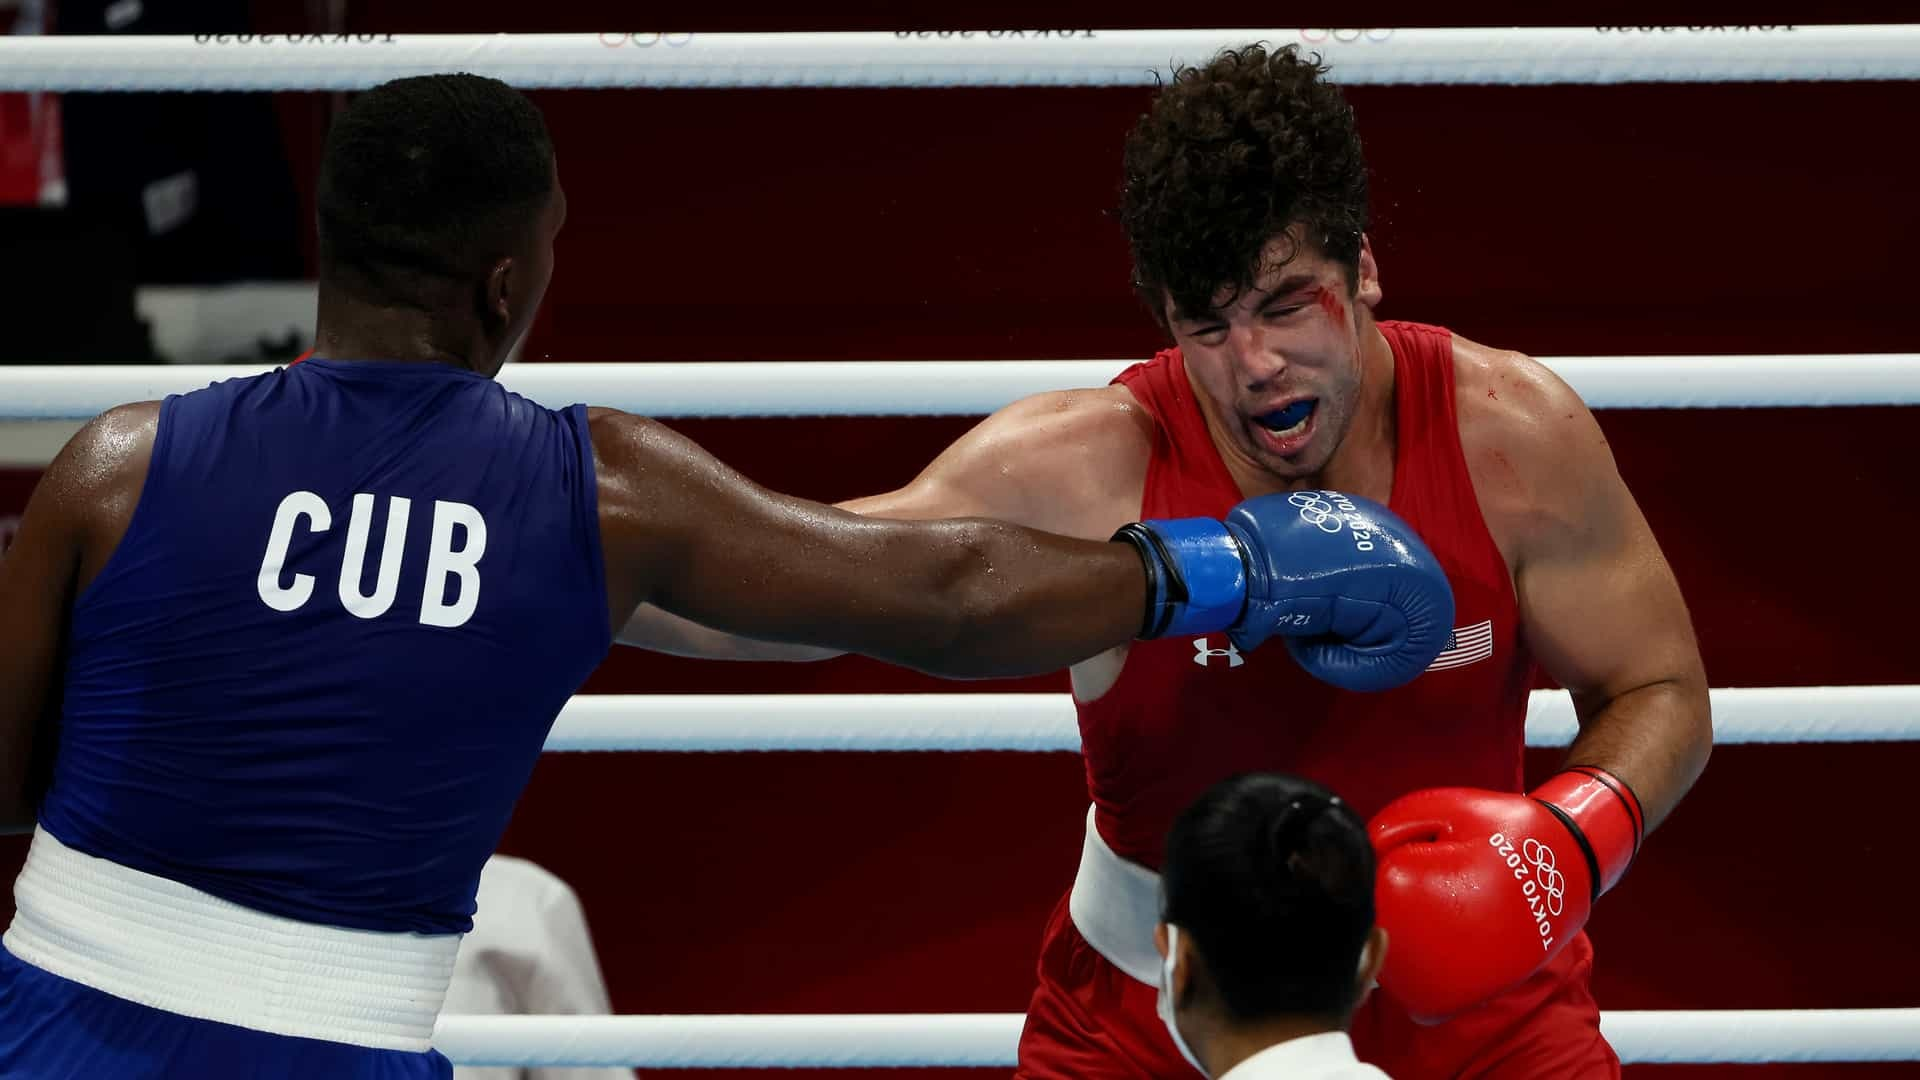 U.S. boxer Richard Torrez squares off against Cuba's Dainier Pero in super heayweight quarterfinal action at the 2020 Tokyo Olympic Games.